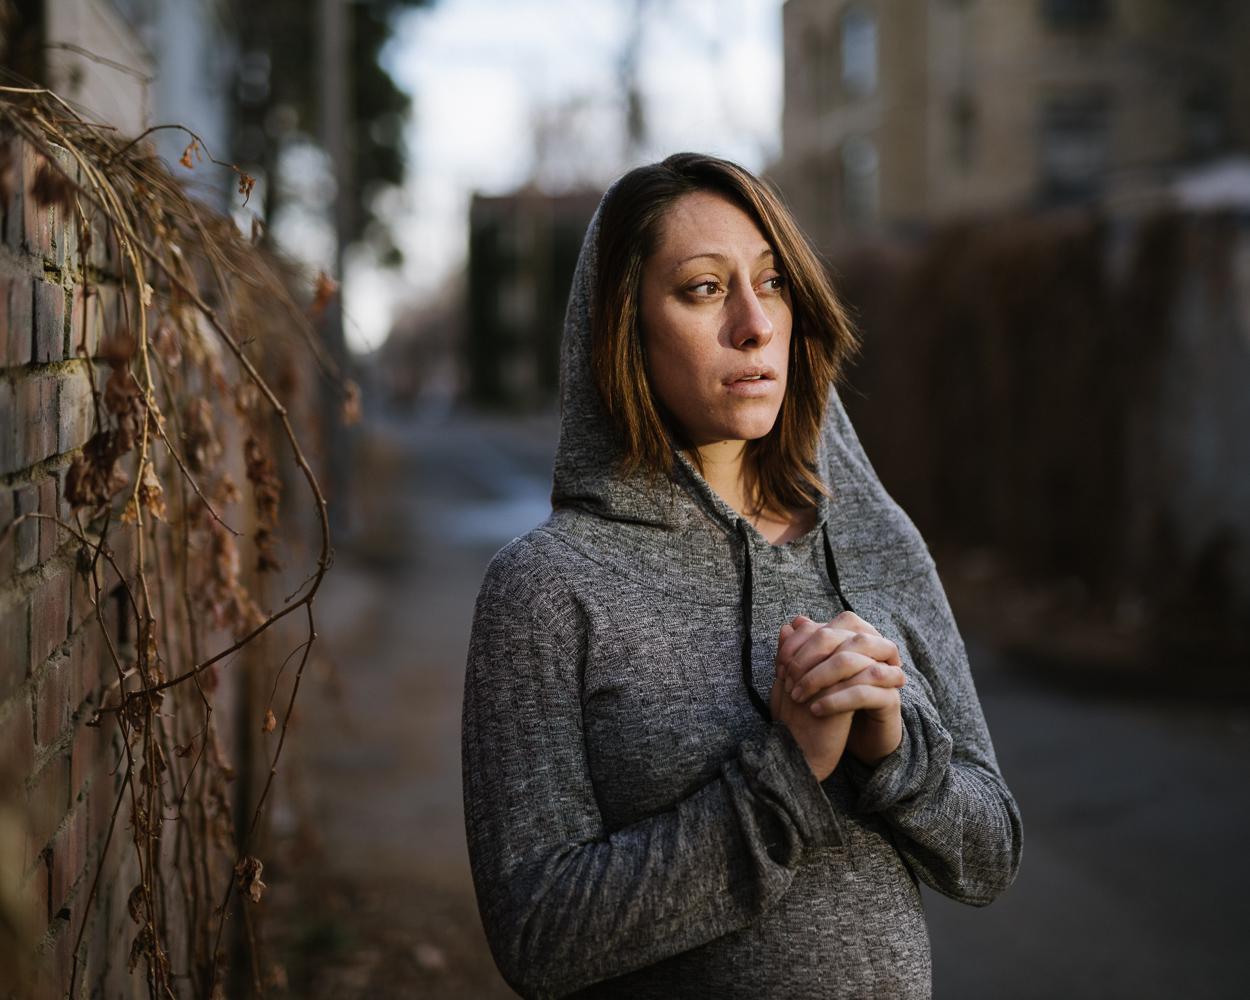 Angeline I'm 29, pregnant, alone, and homeless. I am living my fear.